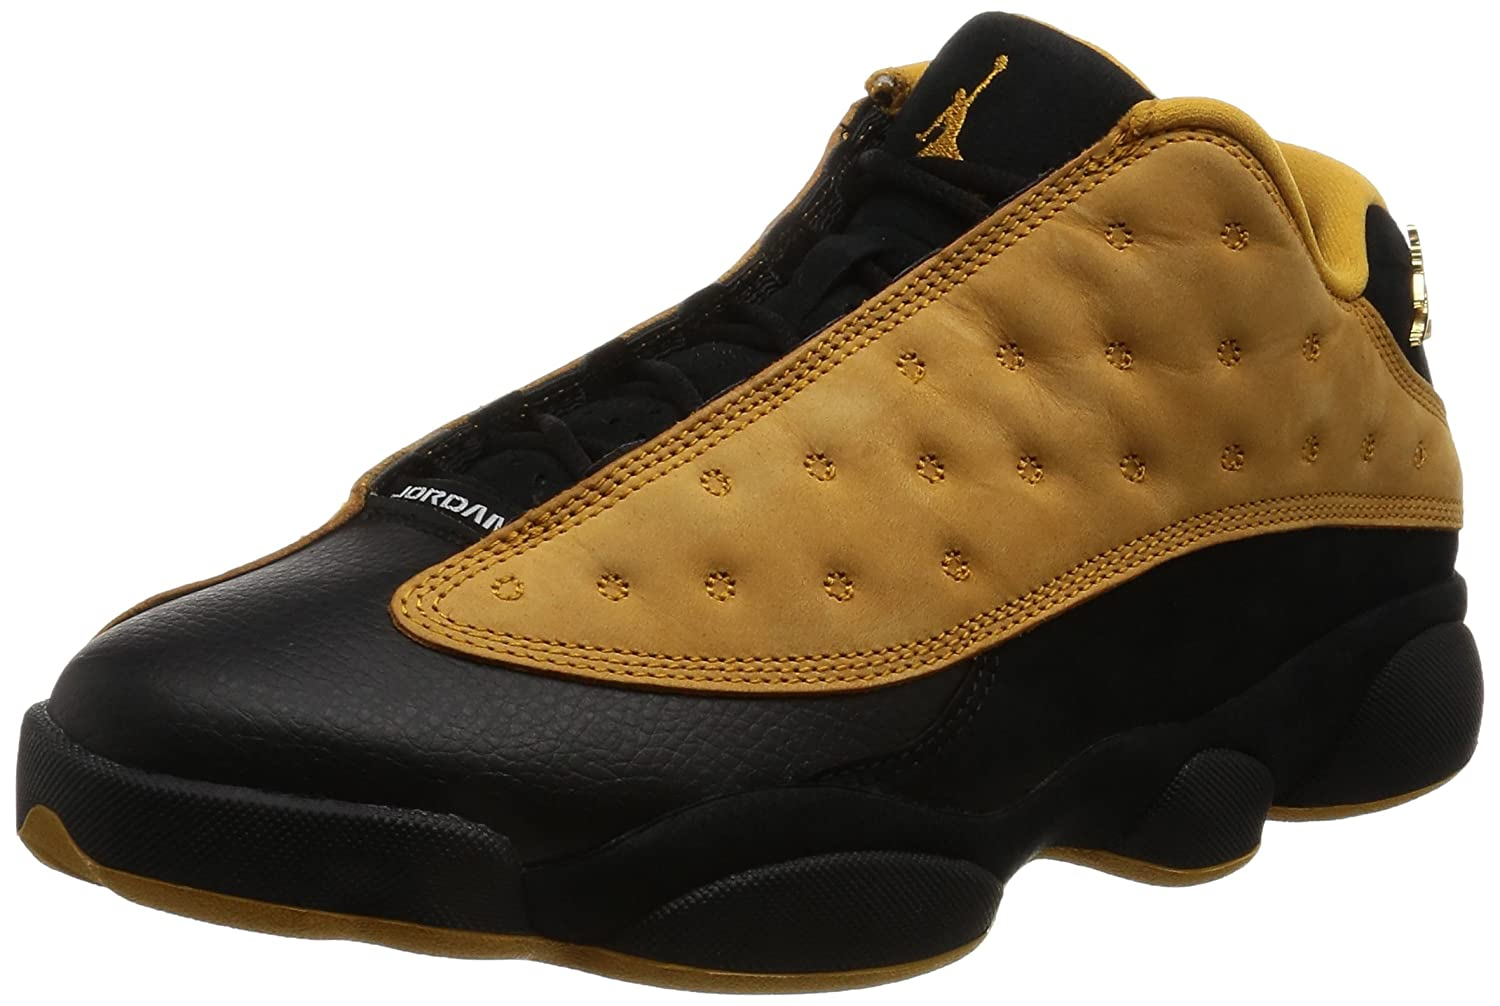 Air Jordan 13 Retro Low - 310810 022 B071S8PFRP Parent